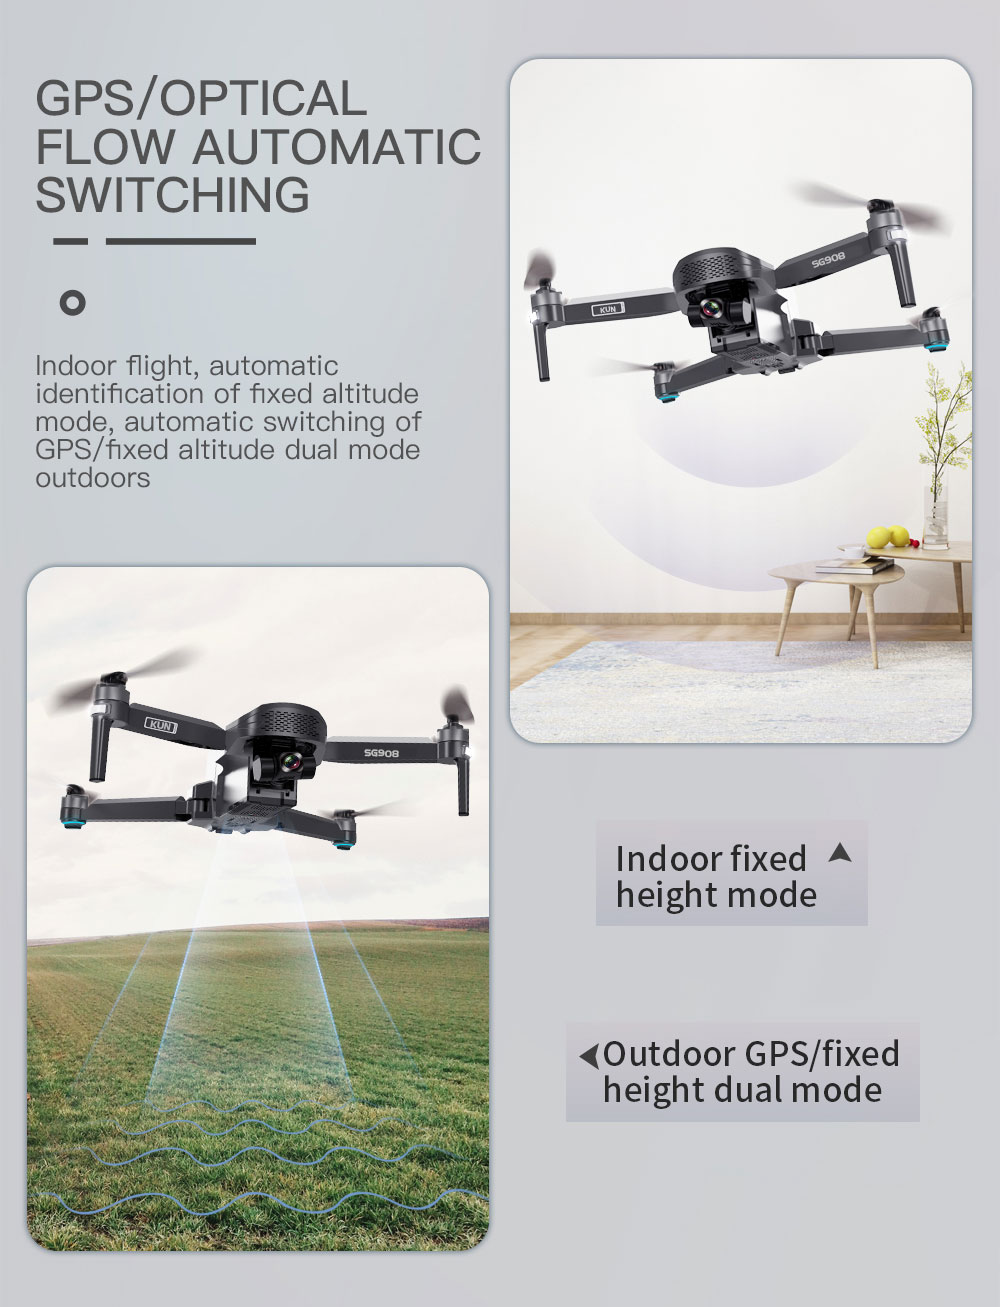 ZLL SG908 4K GPS 5G WIFI FPV with 3-Axis Gimbal Optical Flow Positioning Brushless RC Drone - Three Batteries with Bag